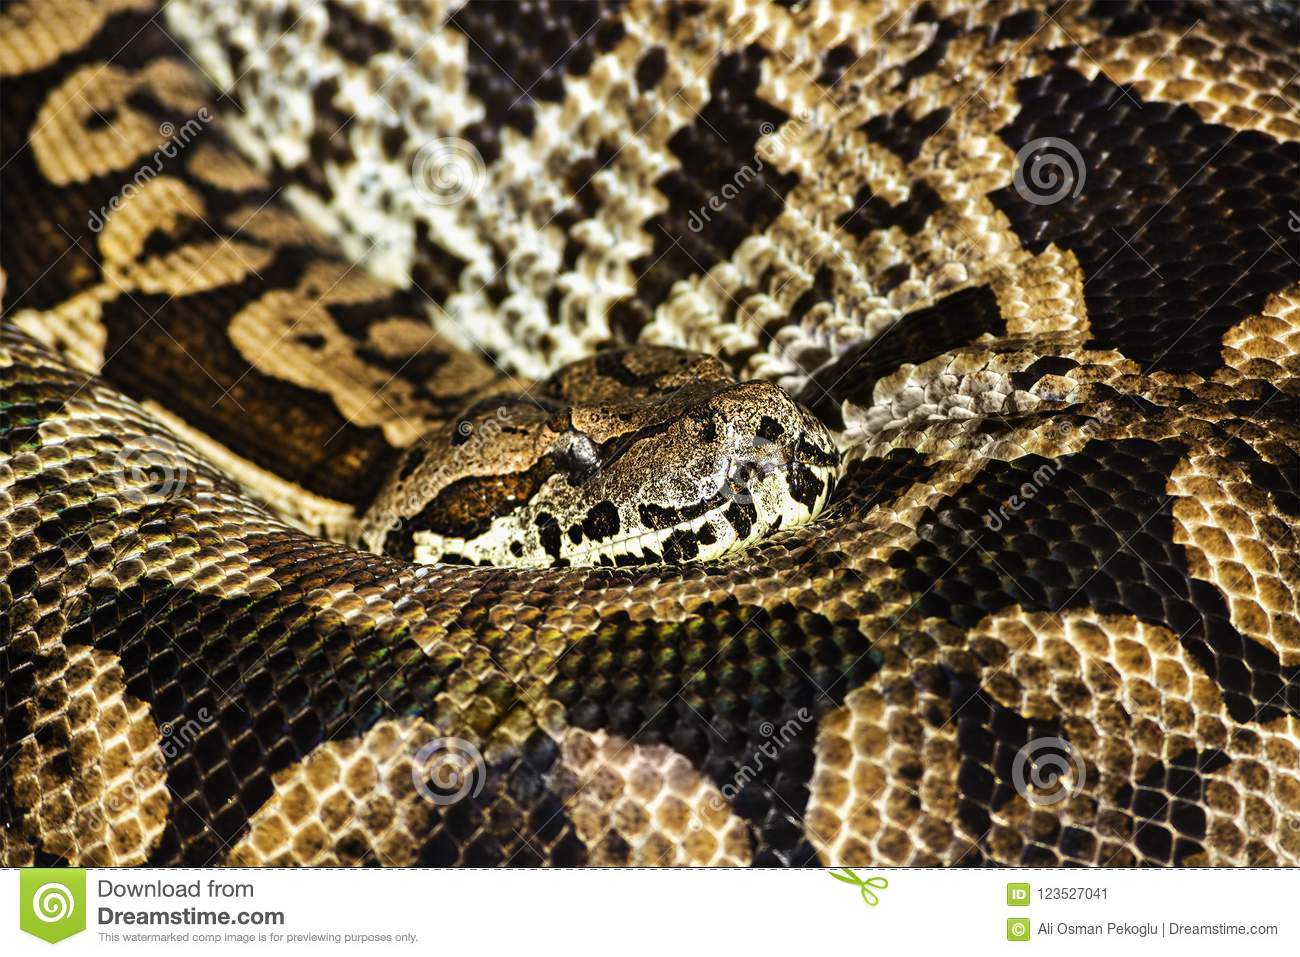 pyton the longest snake in the world quietly asleep curled into a